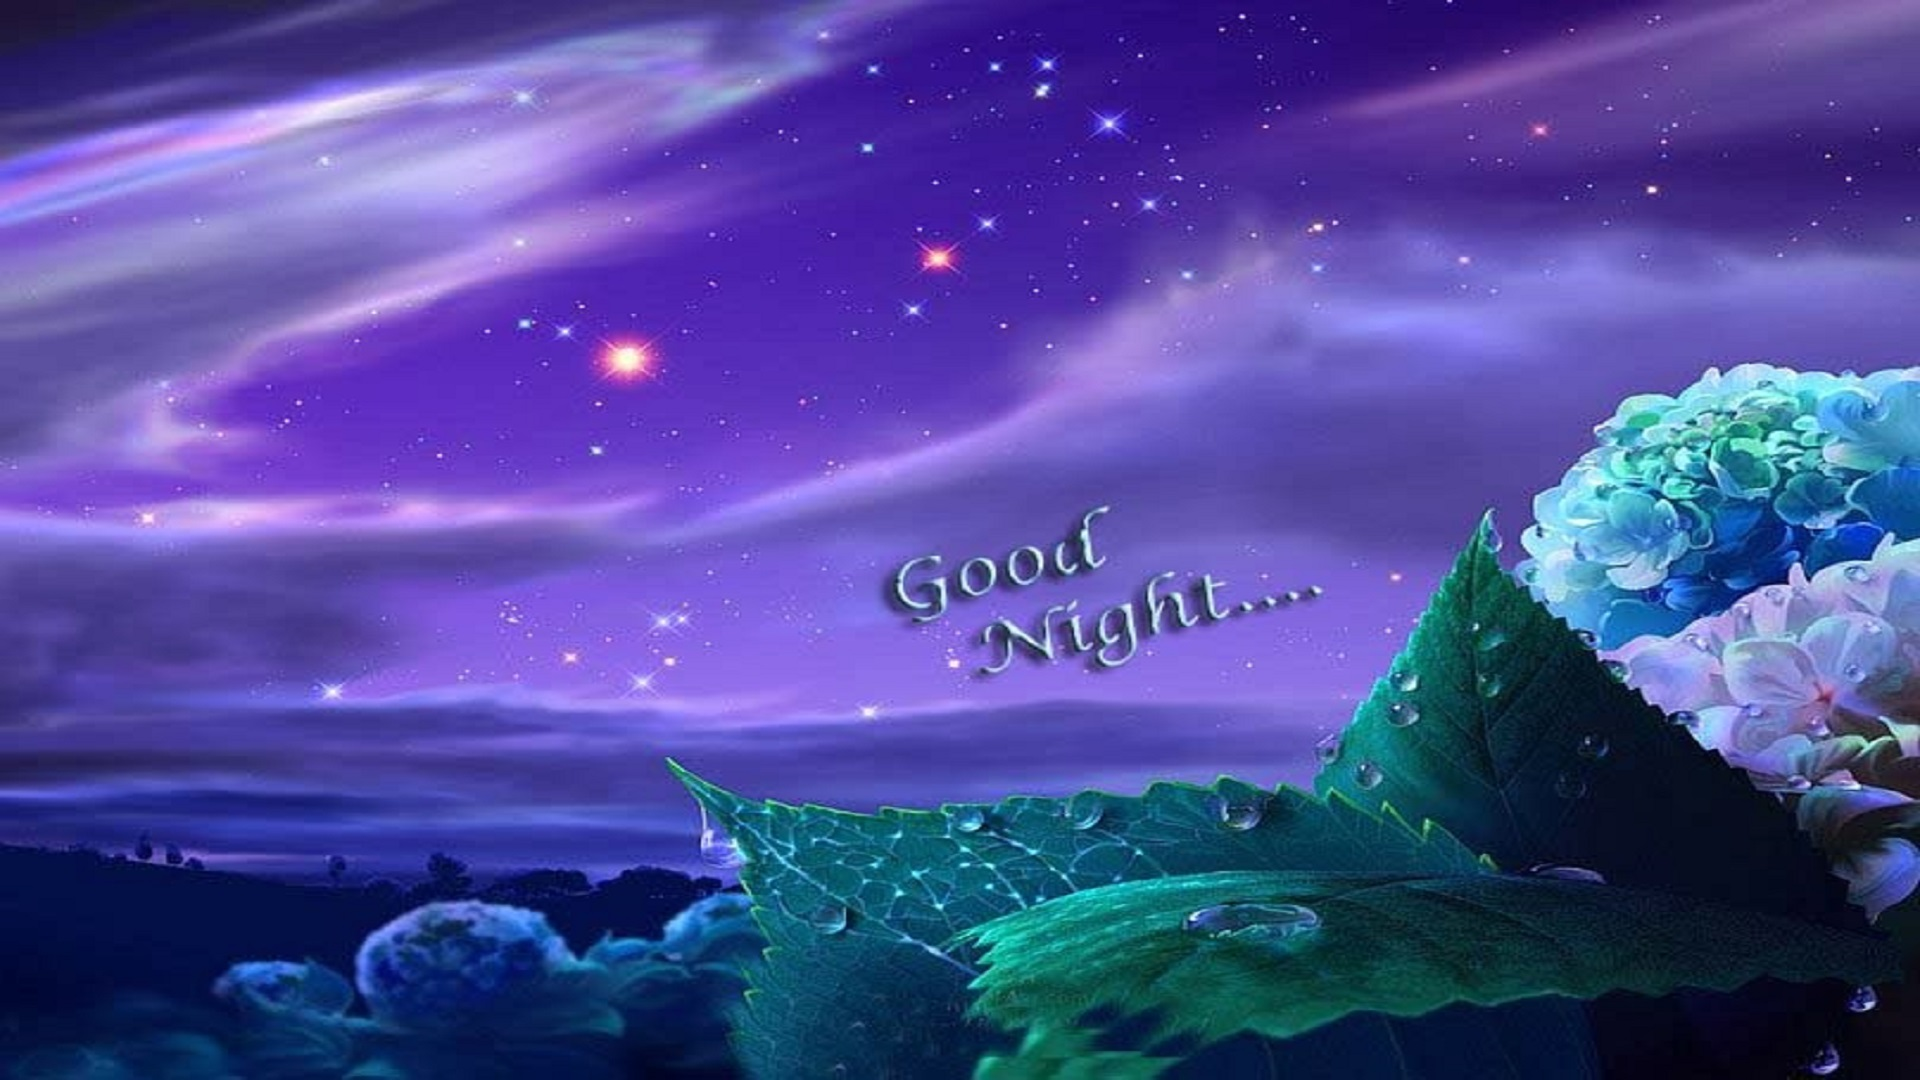 Free Animated Wallpapers For Mobile Phones Good Night Purple Sky Wallpapers Free For Desktop Hd Hd